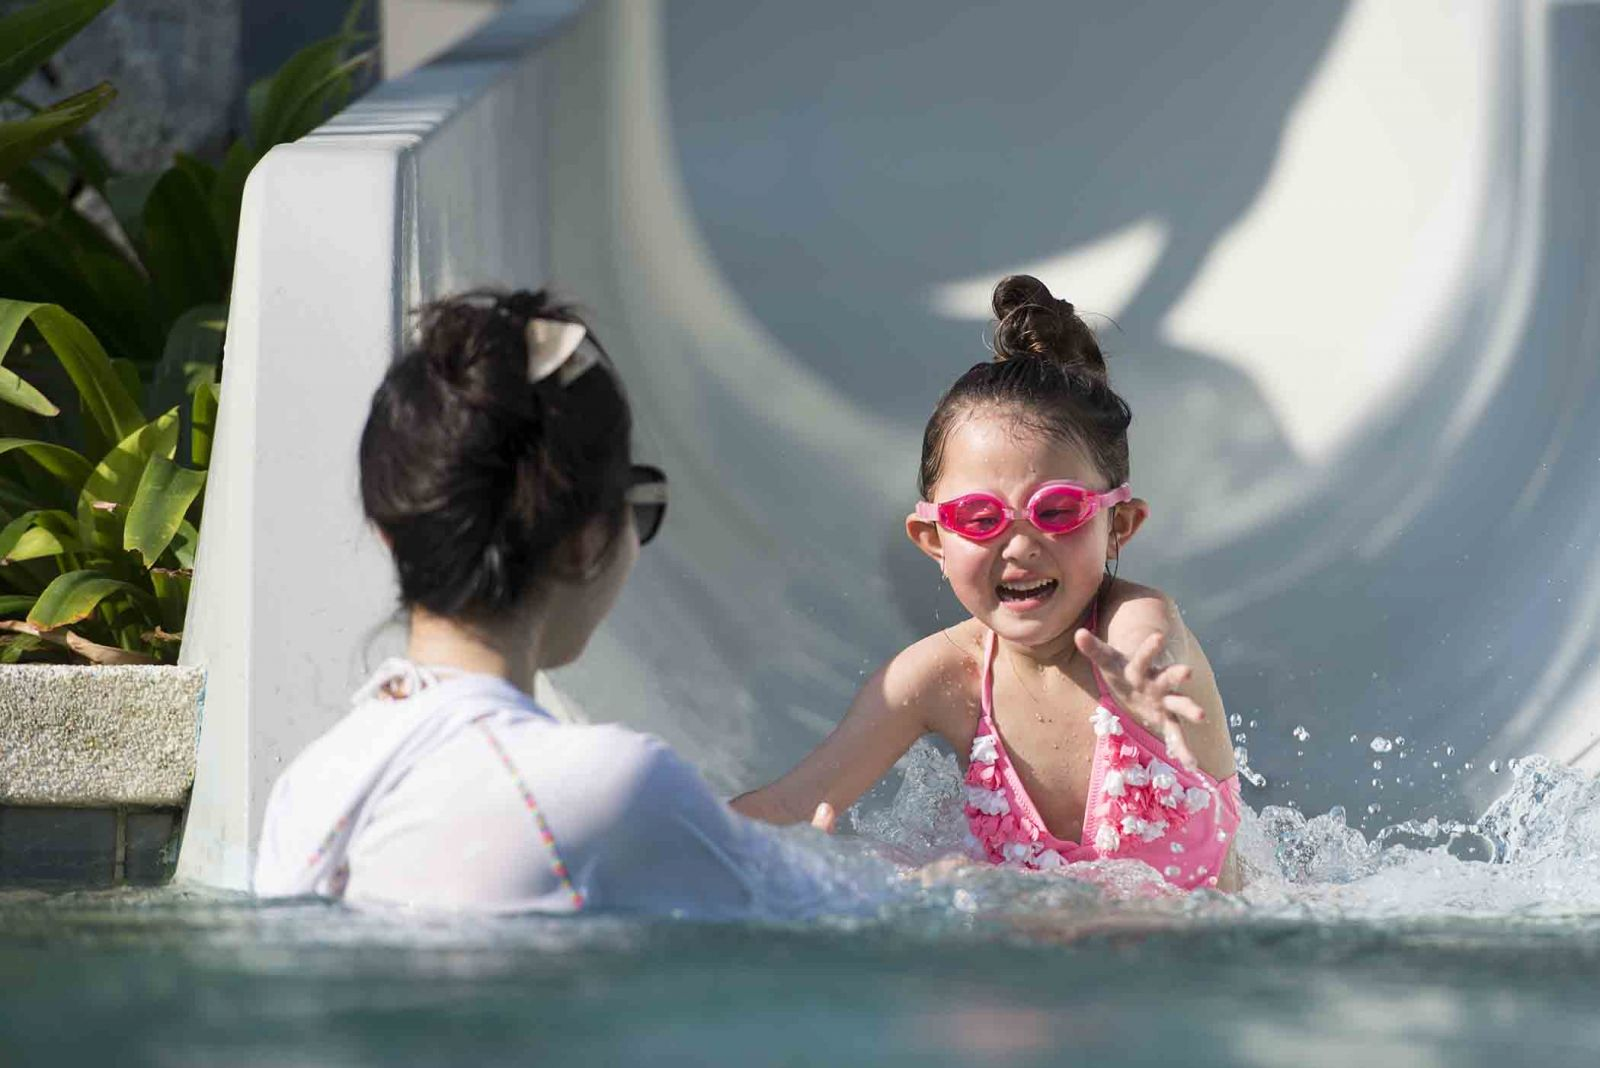 Babysitter catching girl at bottom of water slide